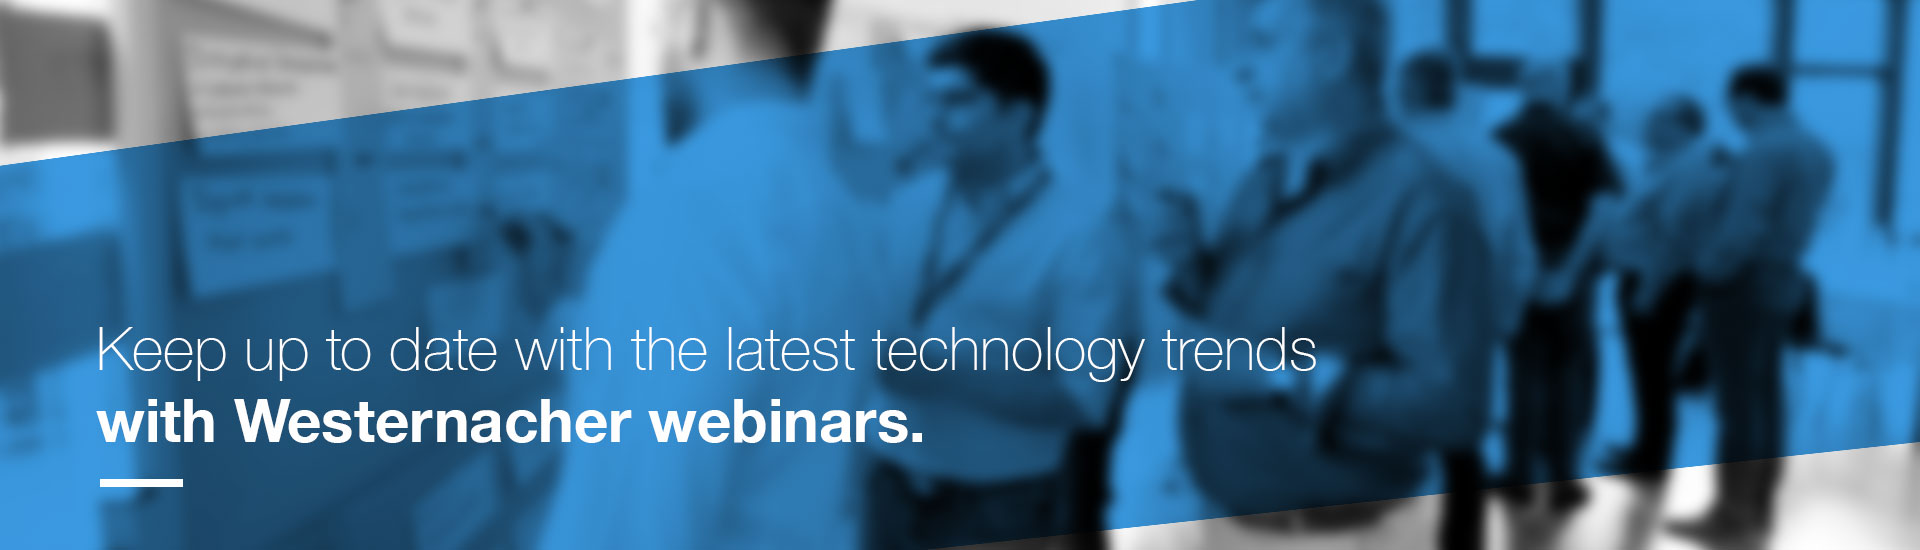 Archived Webinars by Westernacher